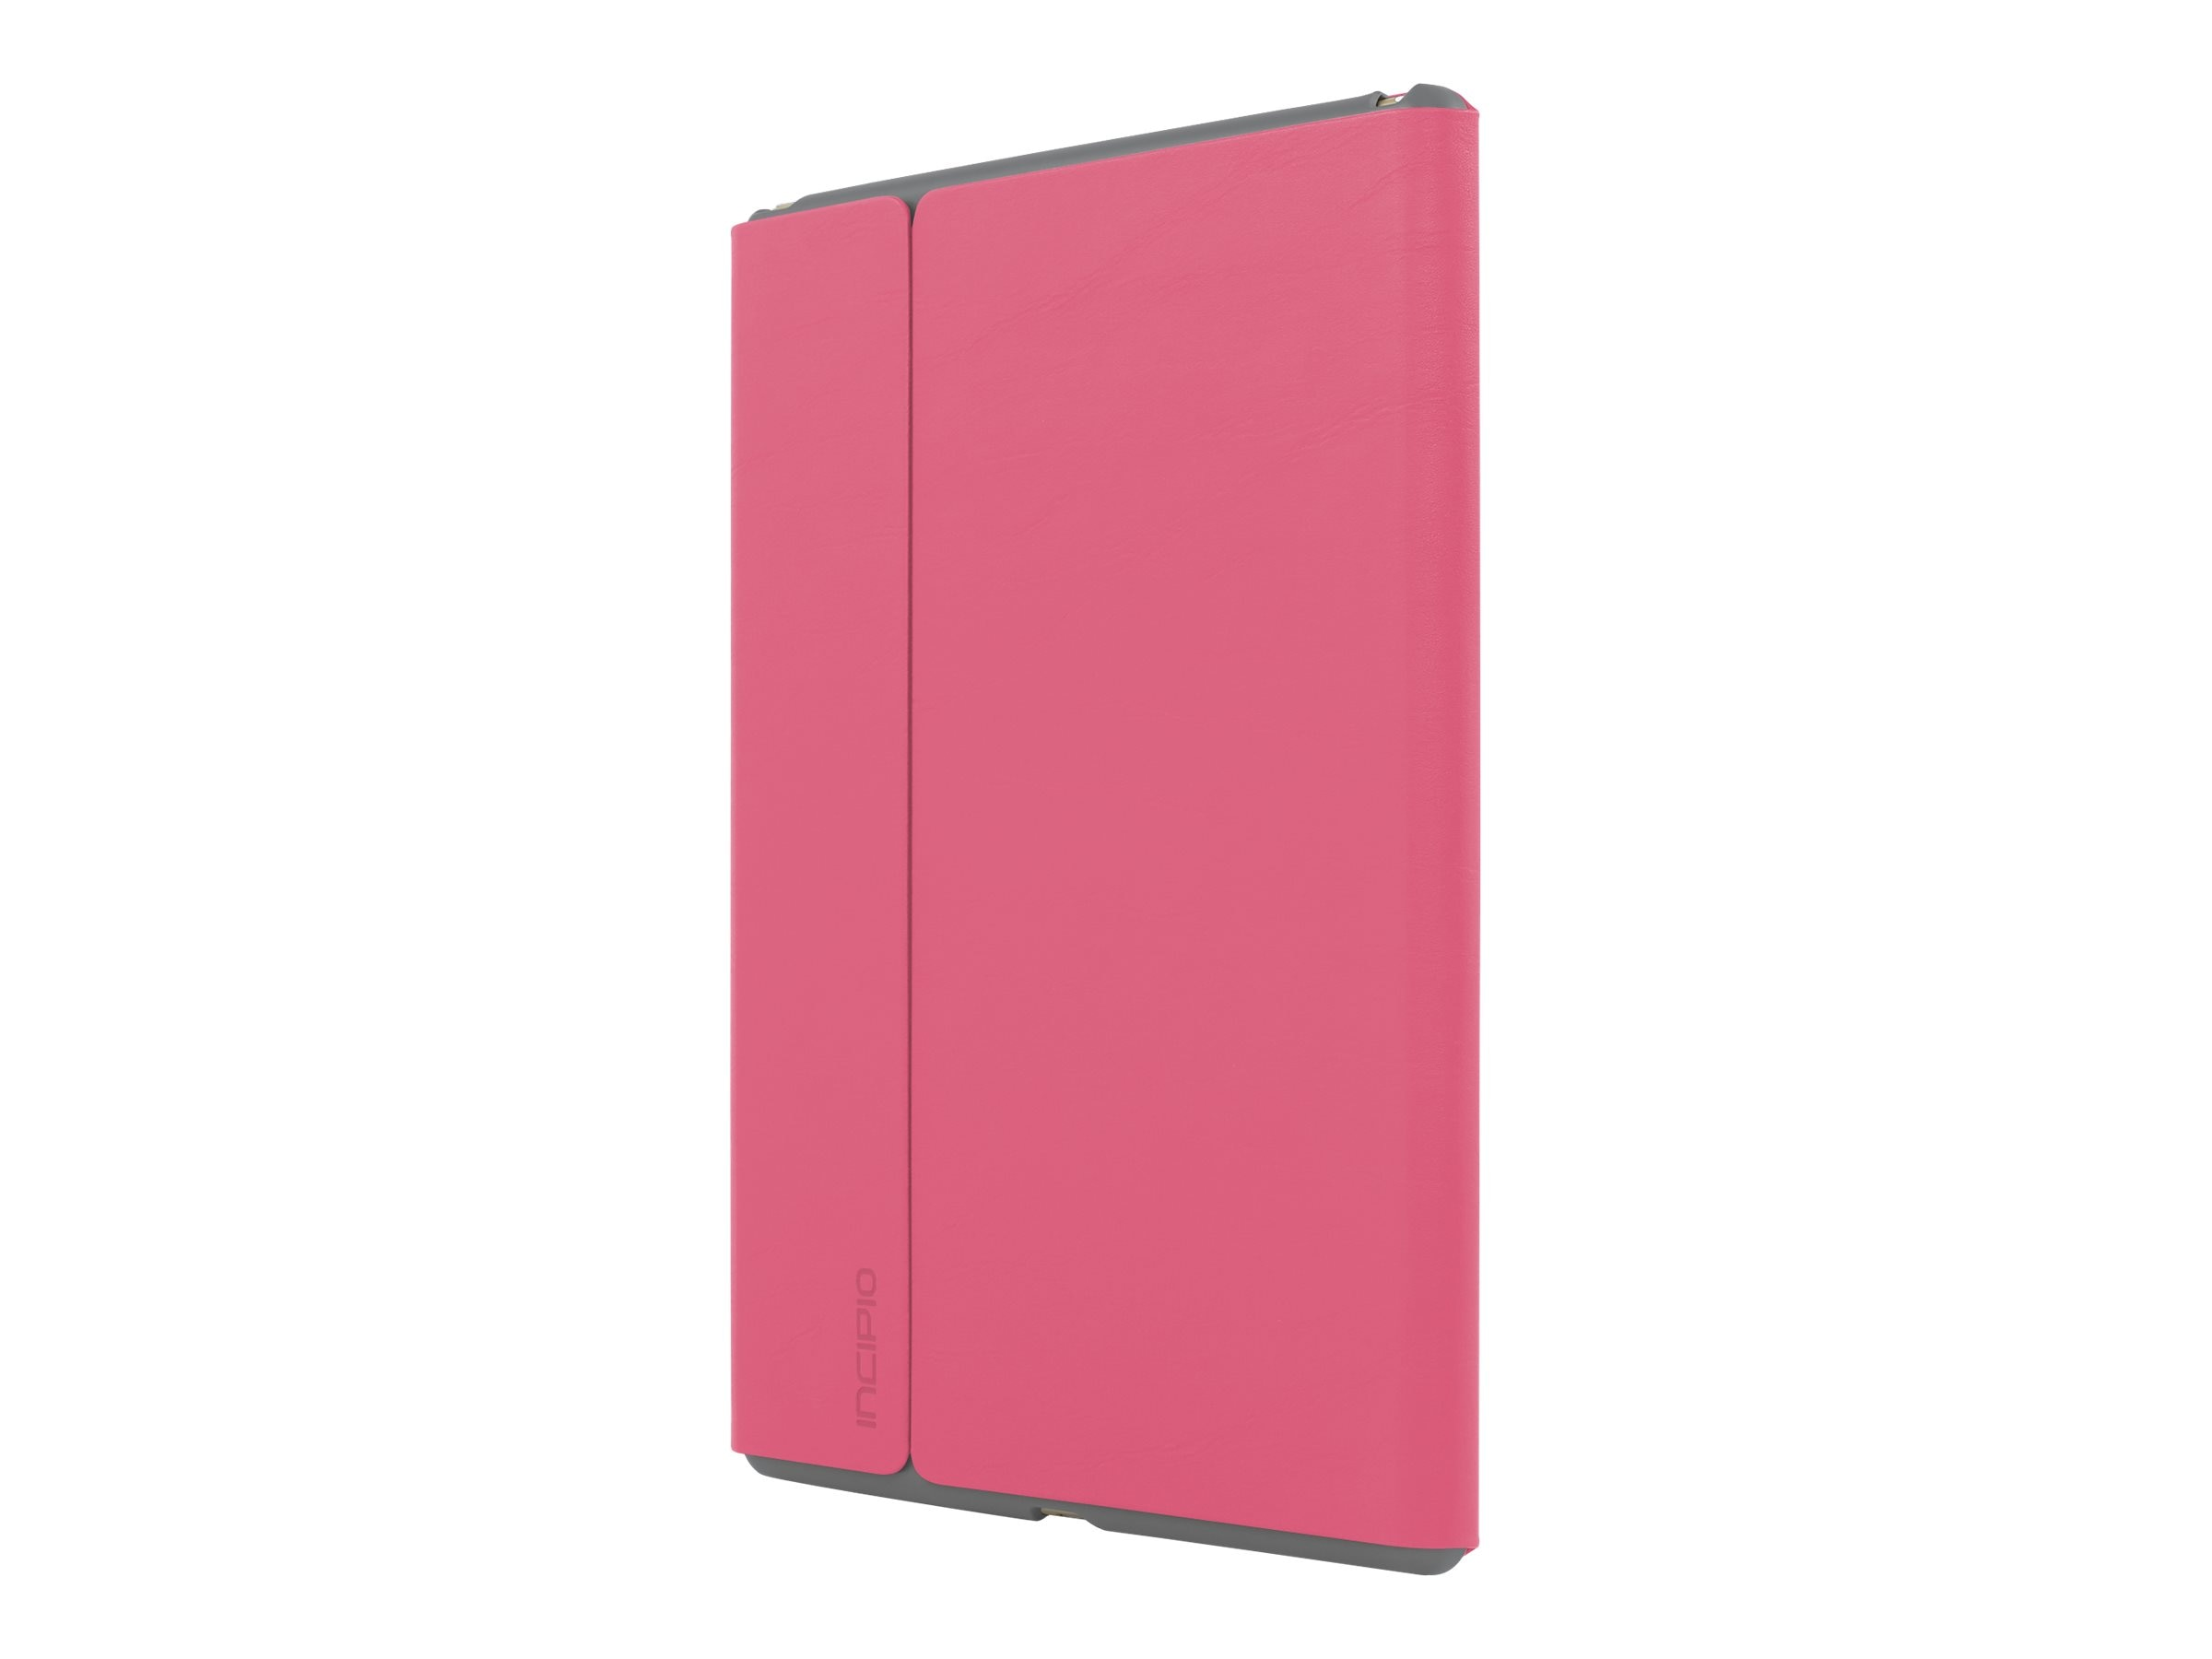 Incipio Faraday Folio Case w  Magnetic Fold Over Closure for iPad Pro, Pink, IPD-285-PNK, 31211708, Carrying Cases - Tablets & eReaders